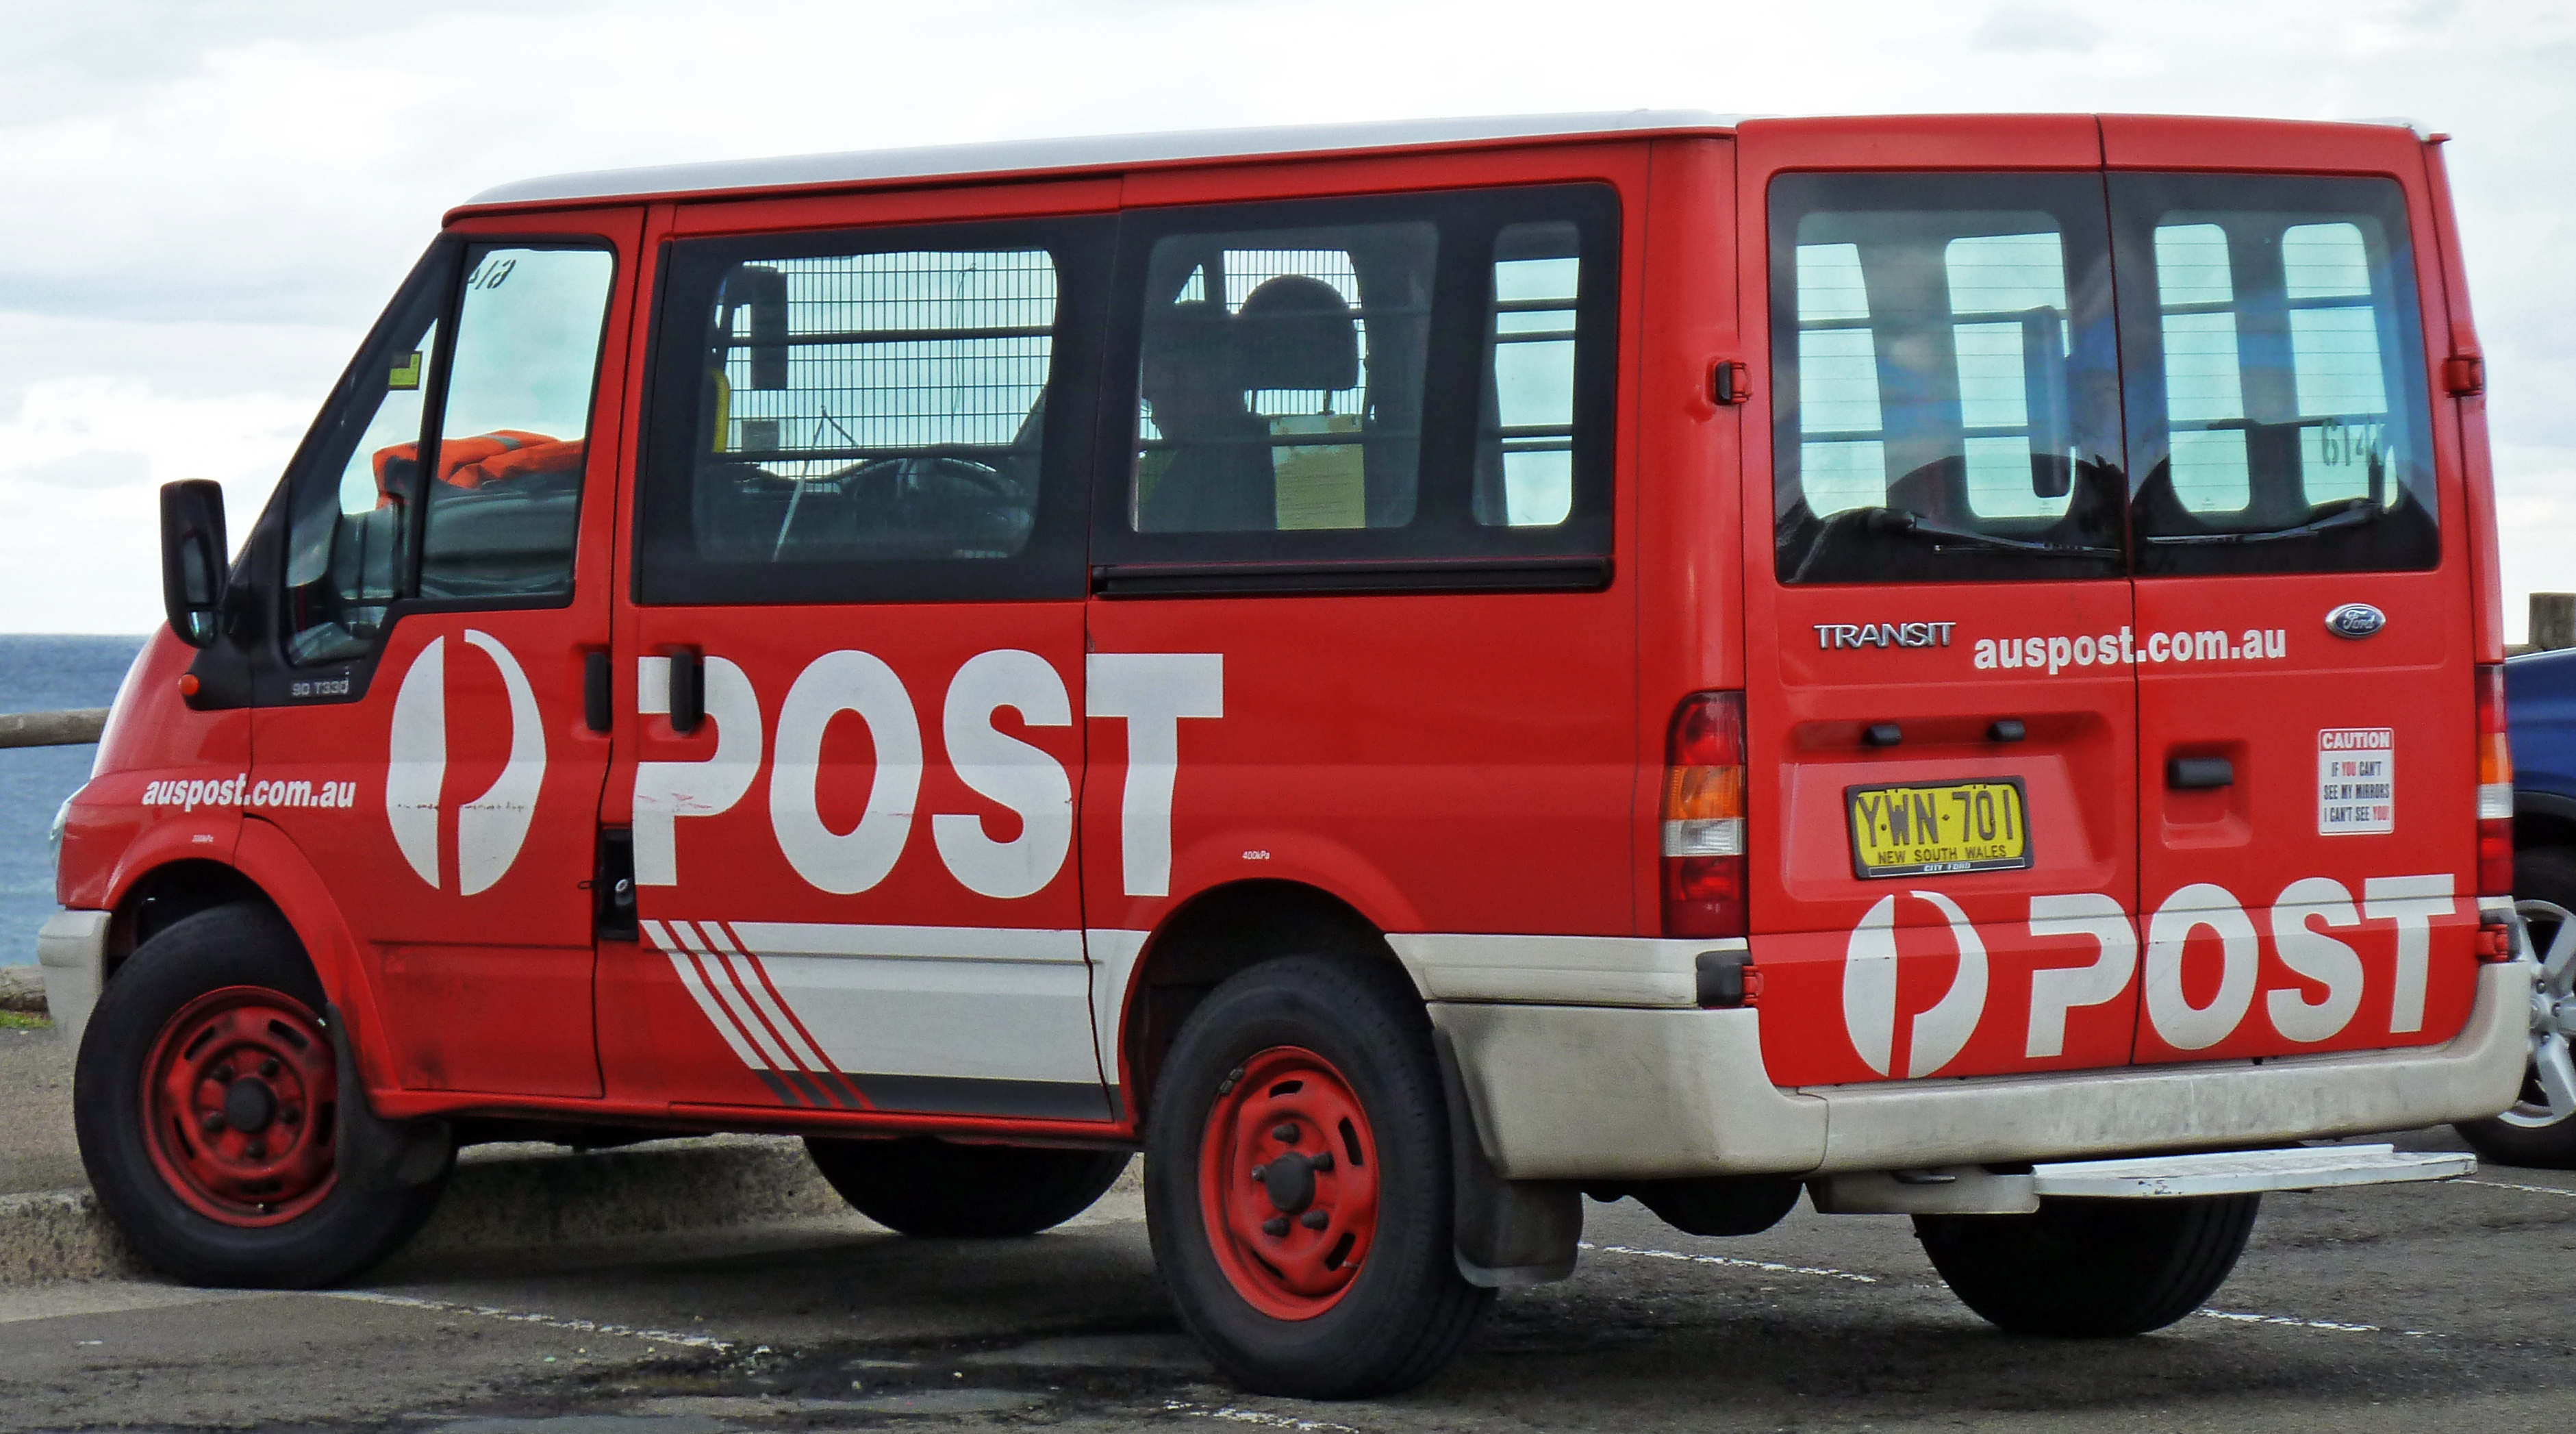 Australia Post delivery van